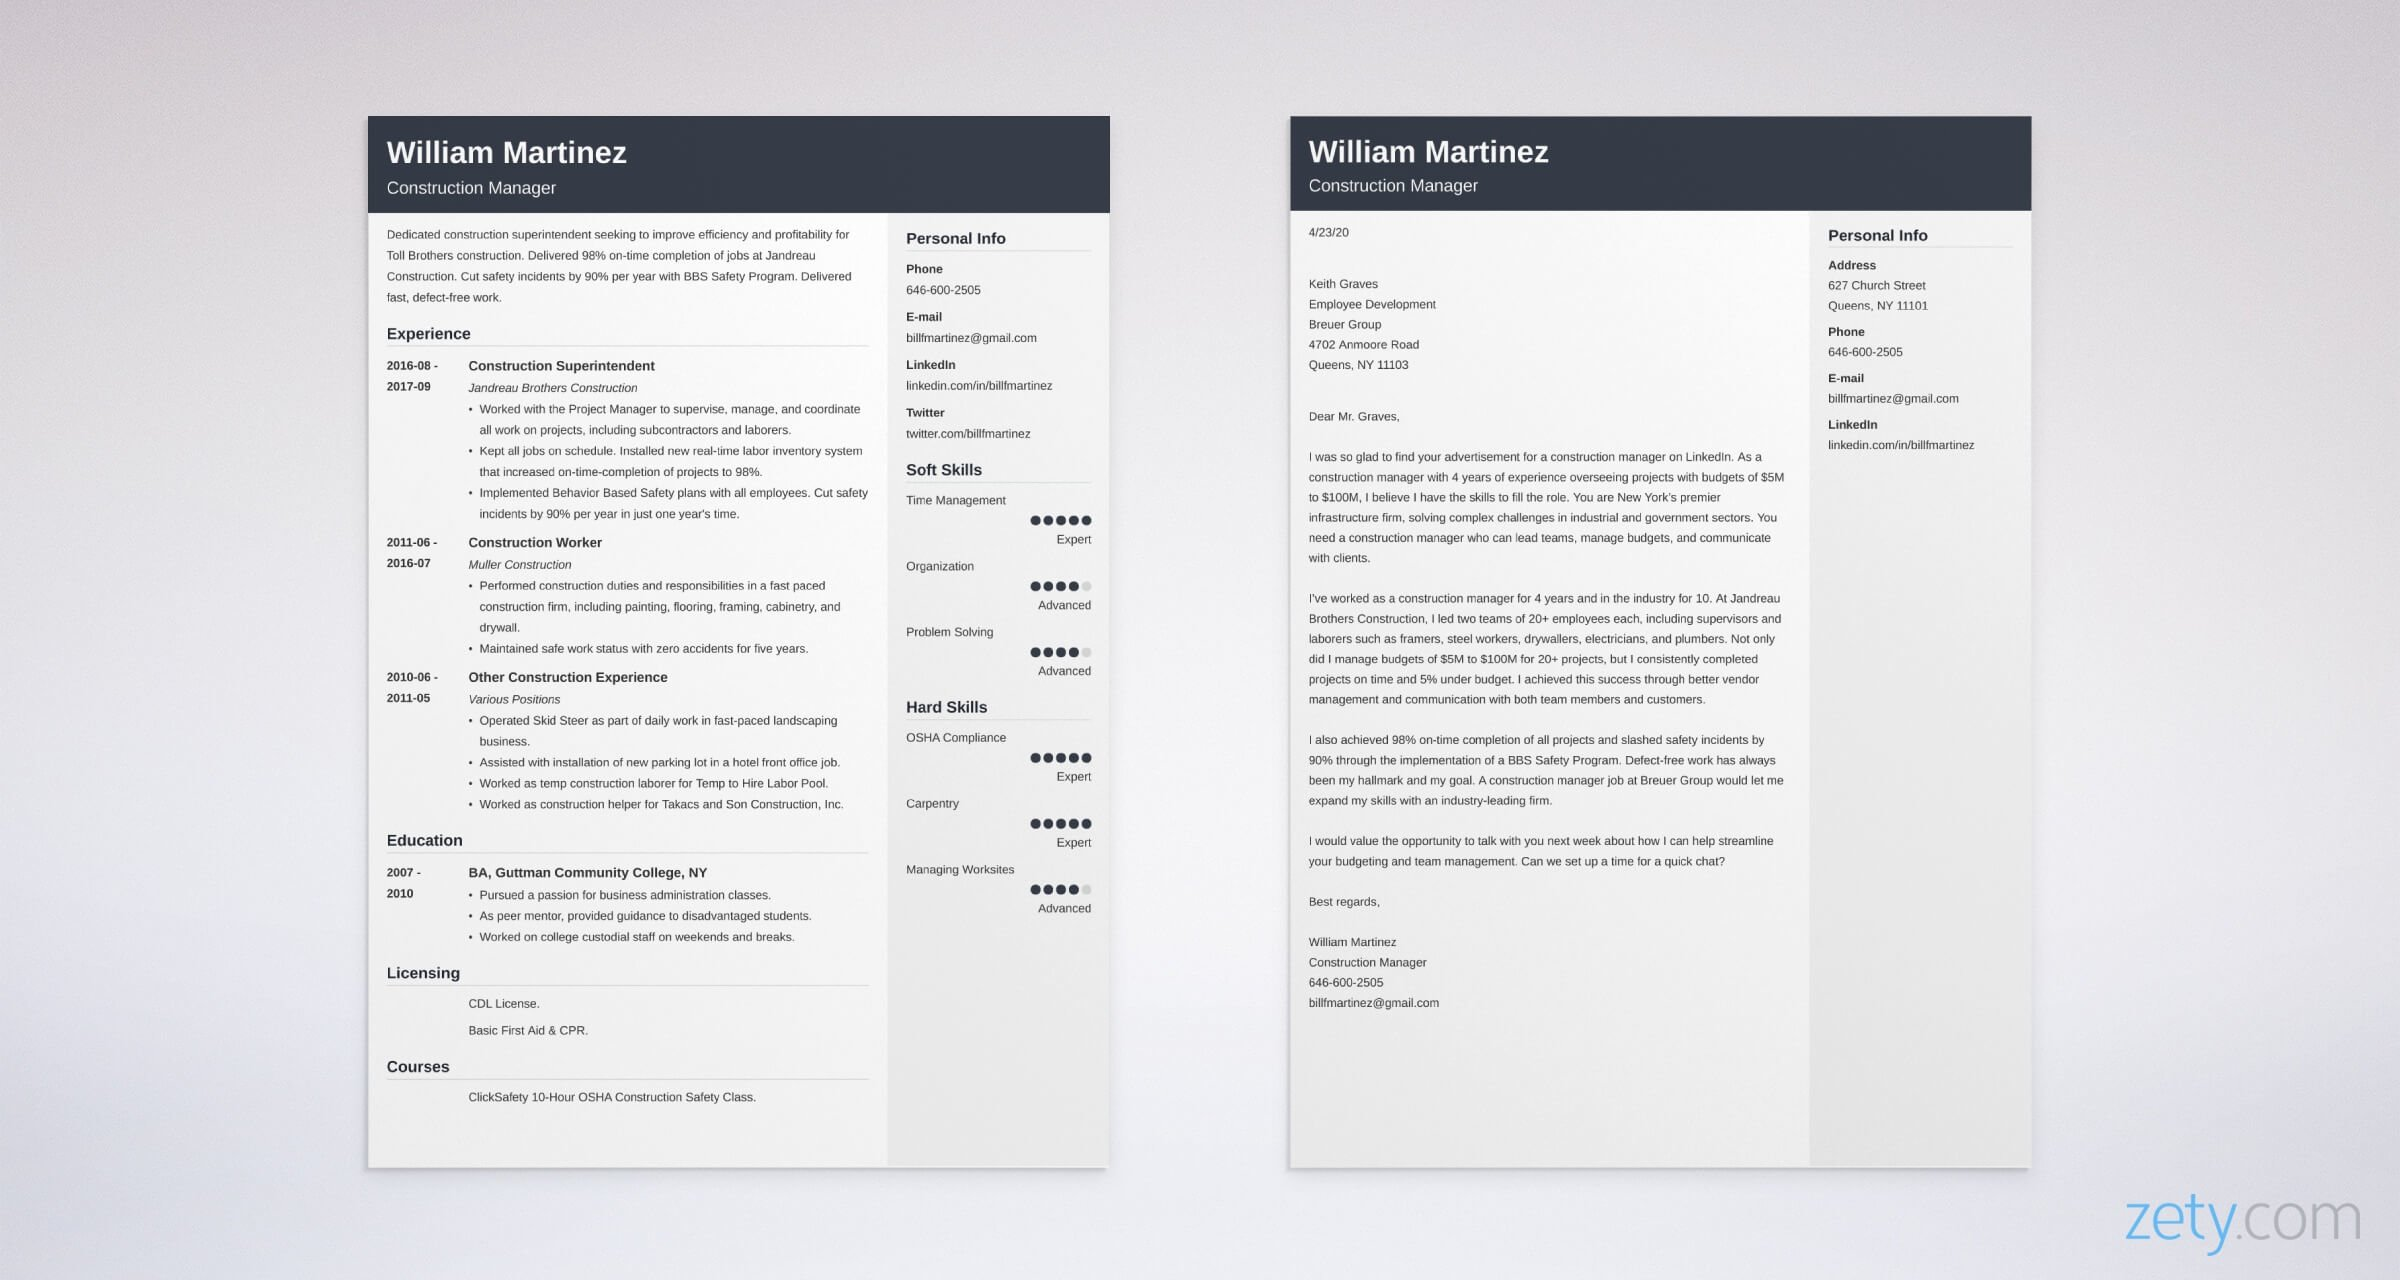 conctruction resume and cover letter set